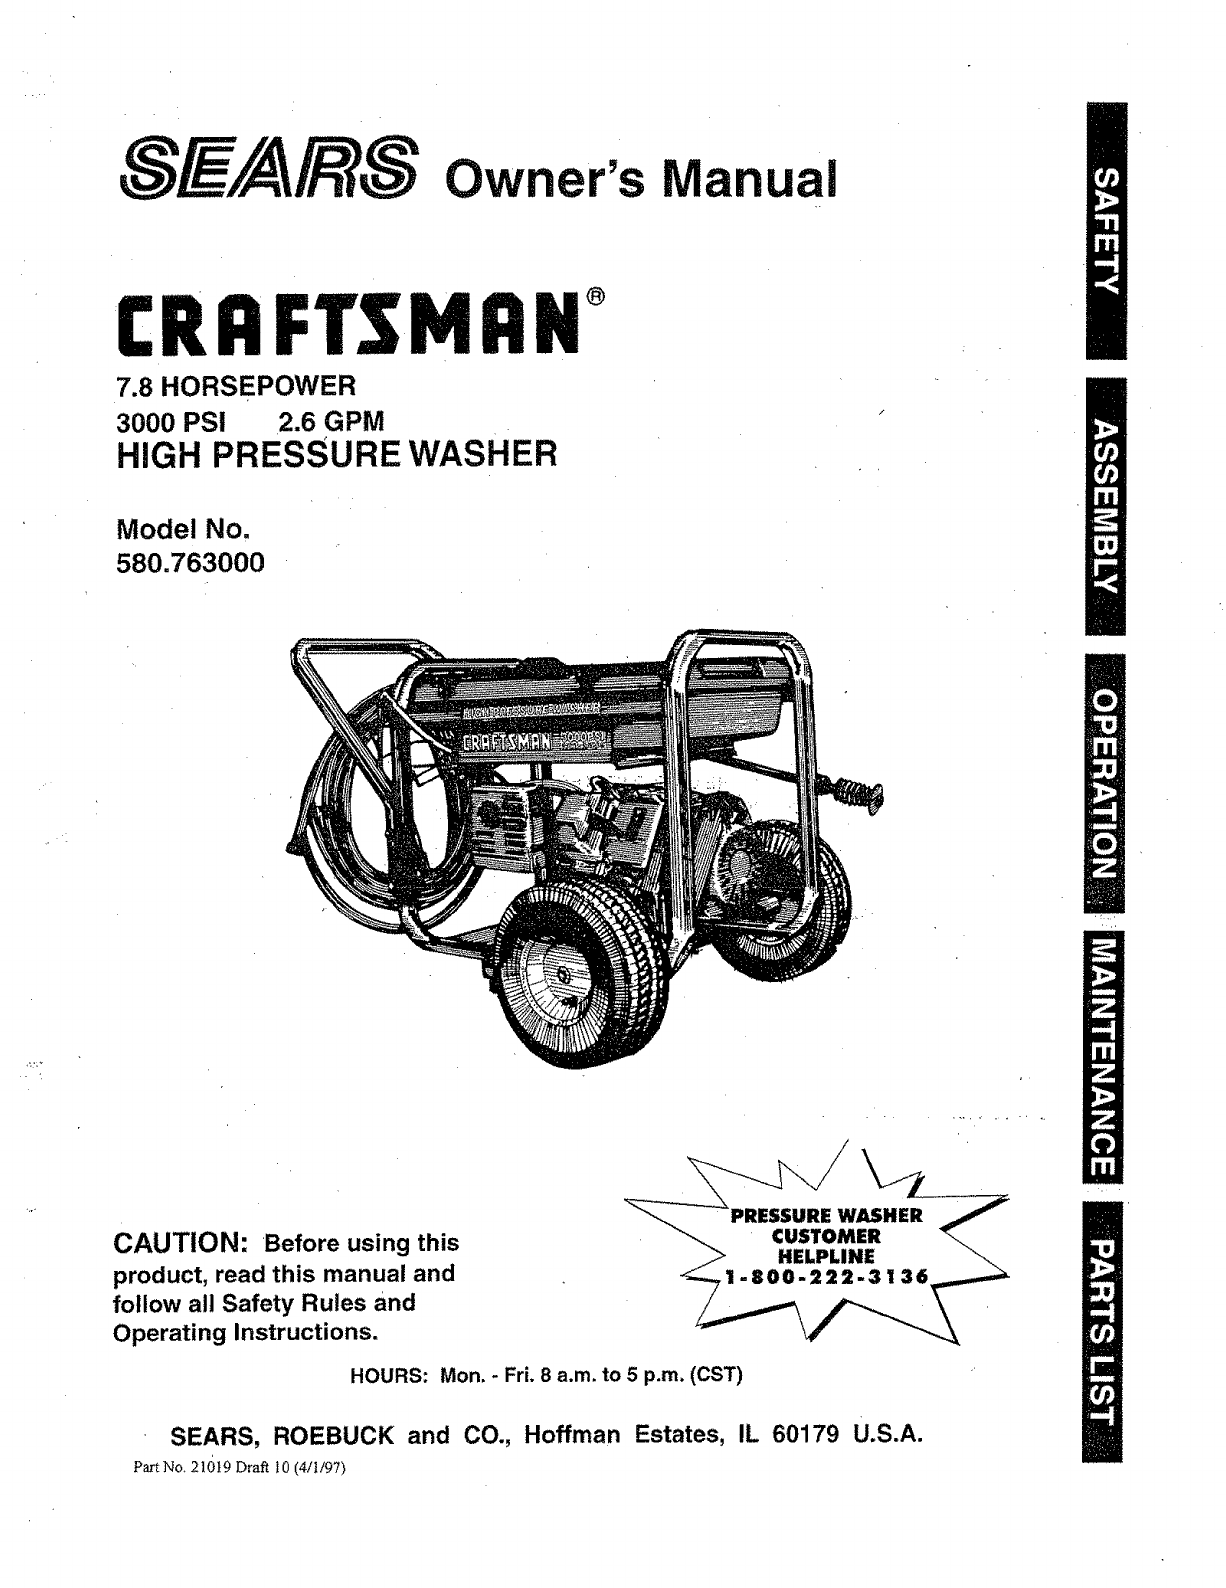 Craftsman 580 Pressure Washer Manual Wiring Diagram 580763 User Guide